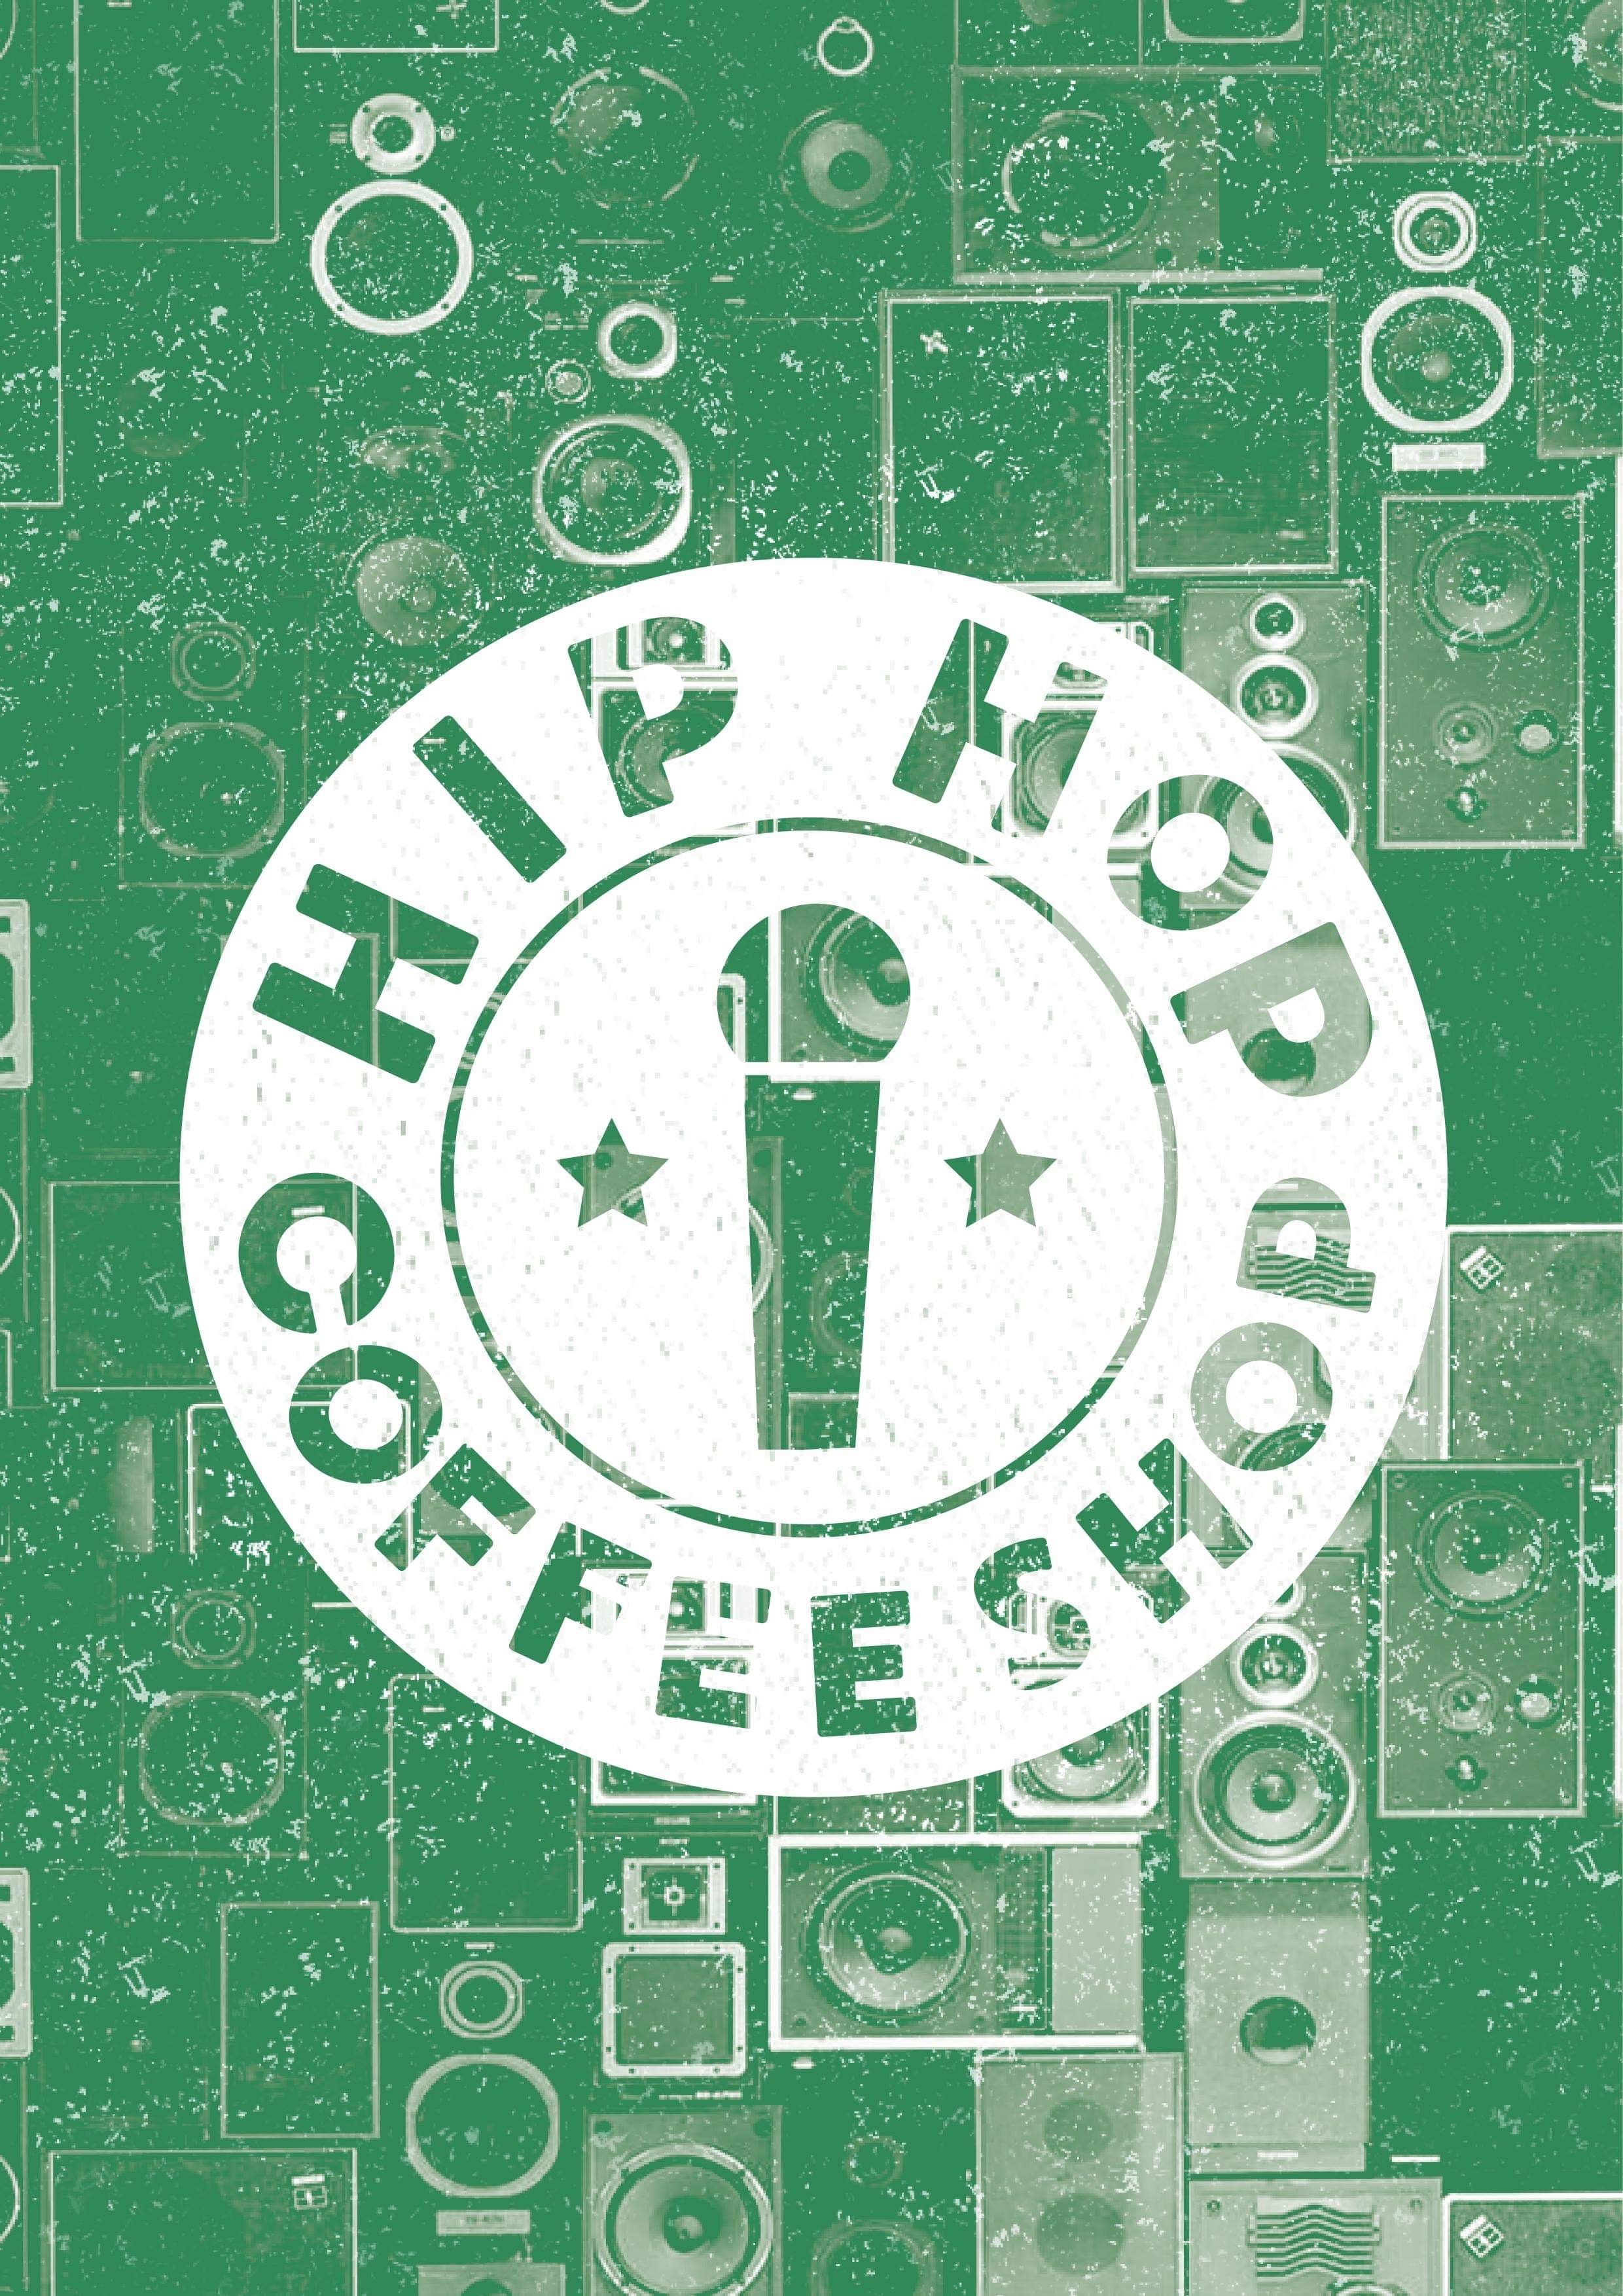 Event Poster For Hip Hop Coffee Shop Sessions: 2nd Bday Bash